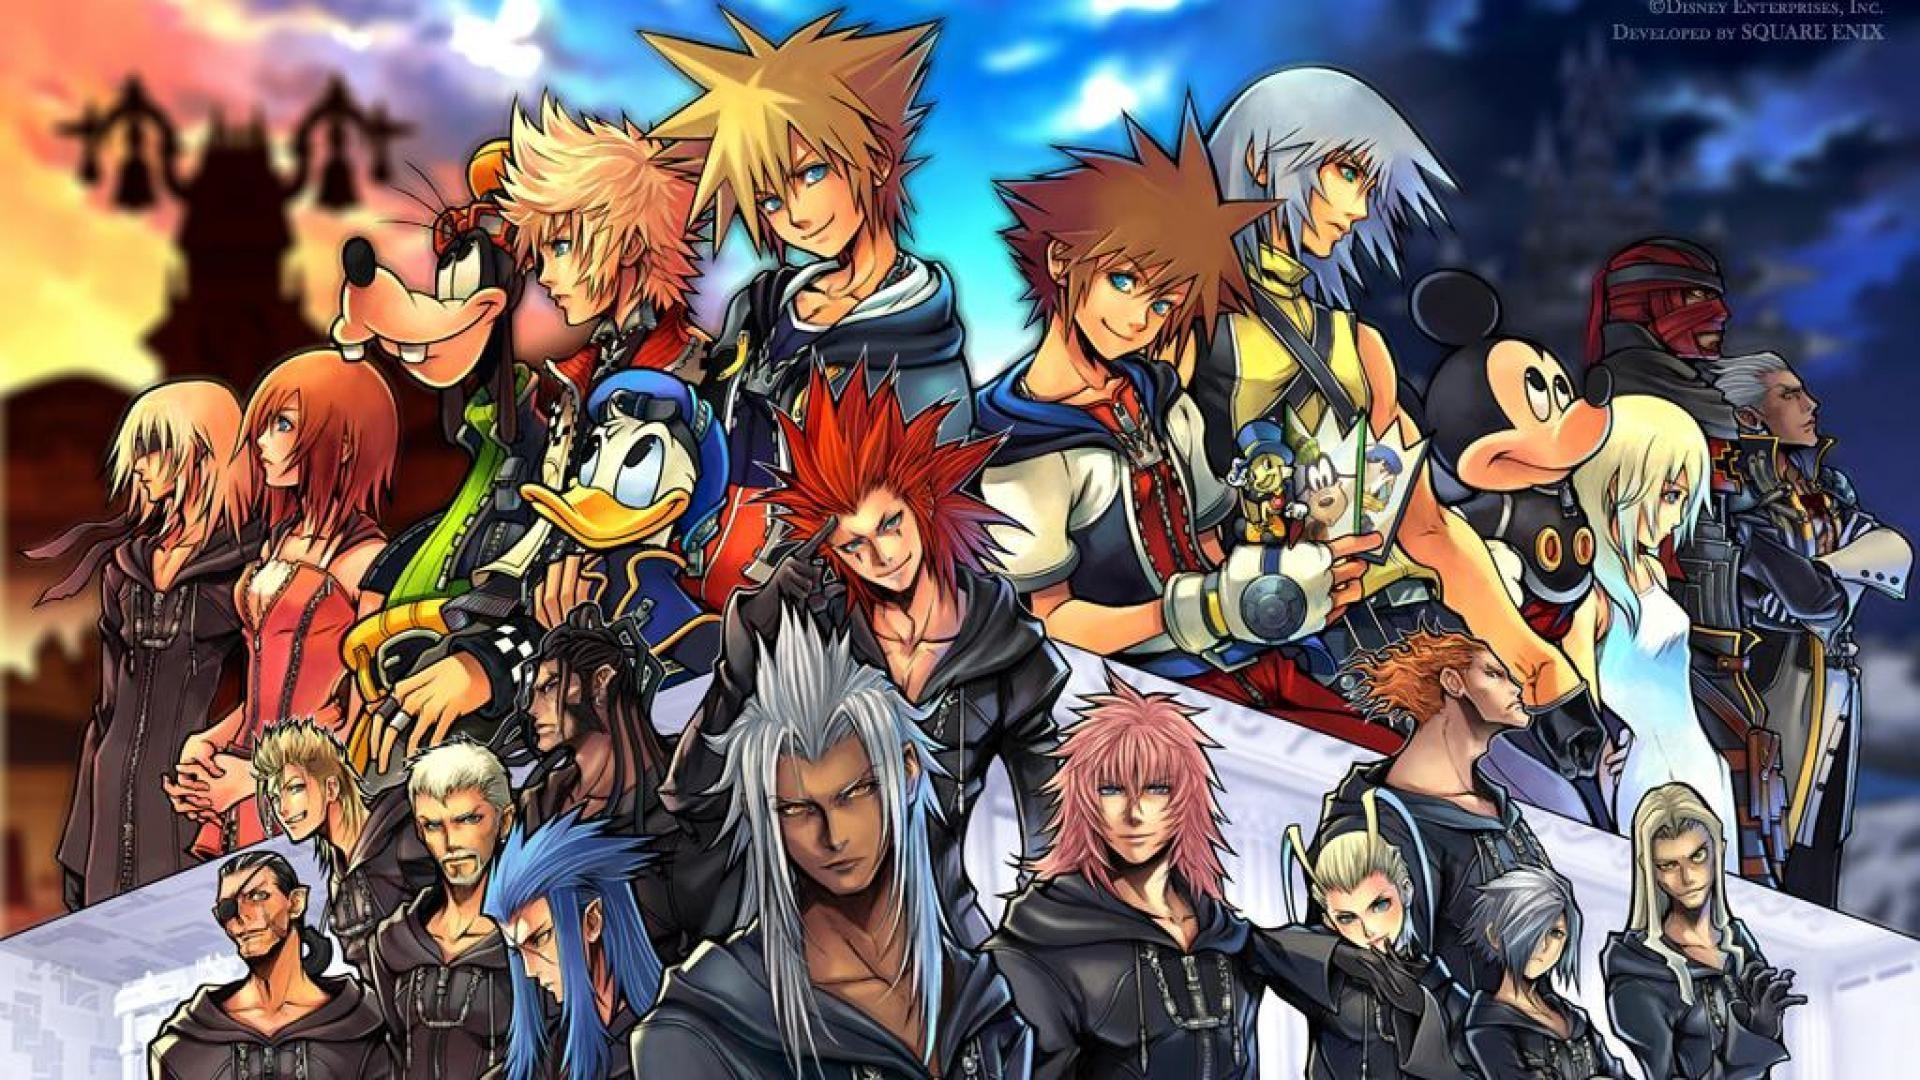 Wallpapers For > Kingdom Hearts Axel Wallpaper 1920×1080